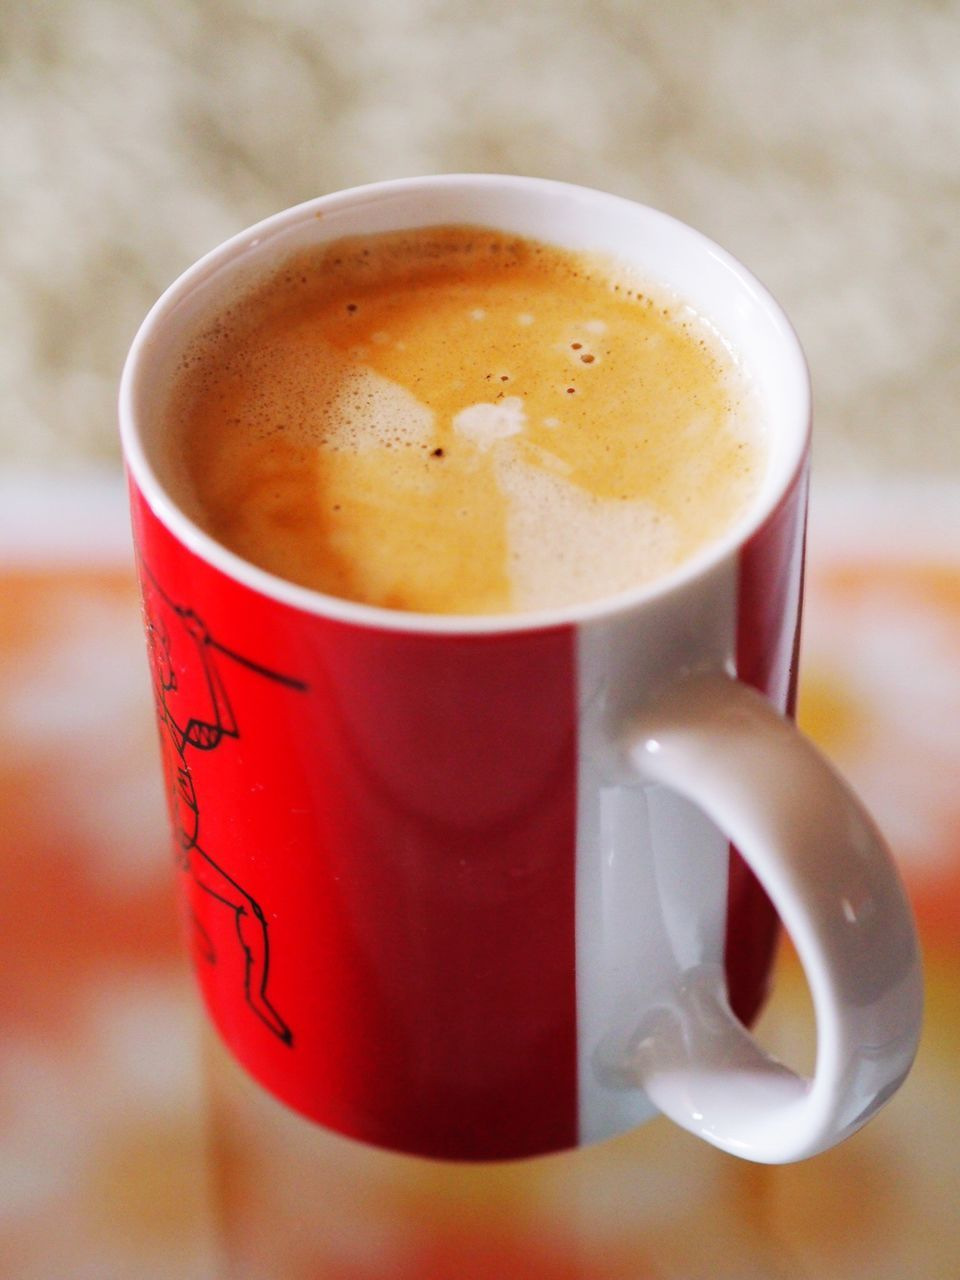 Close-Up Of Coffee In Mug On Table